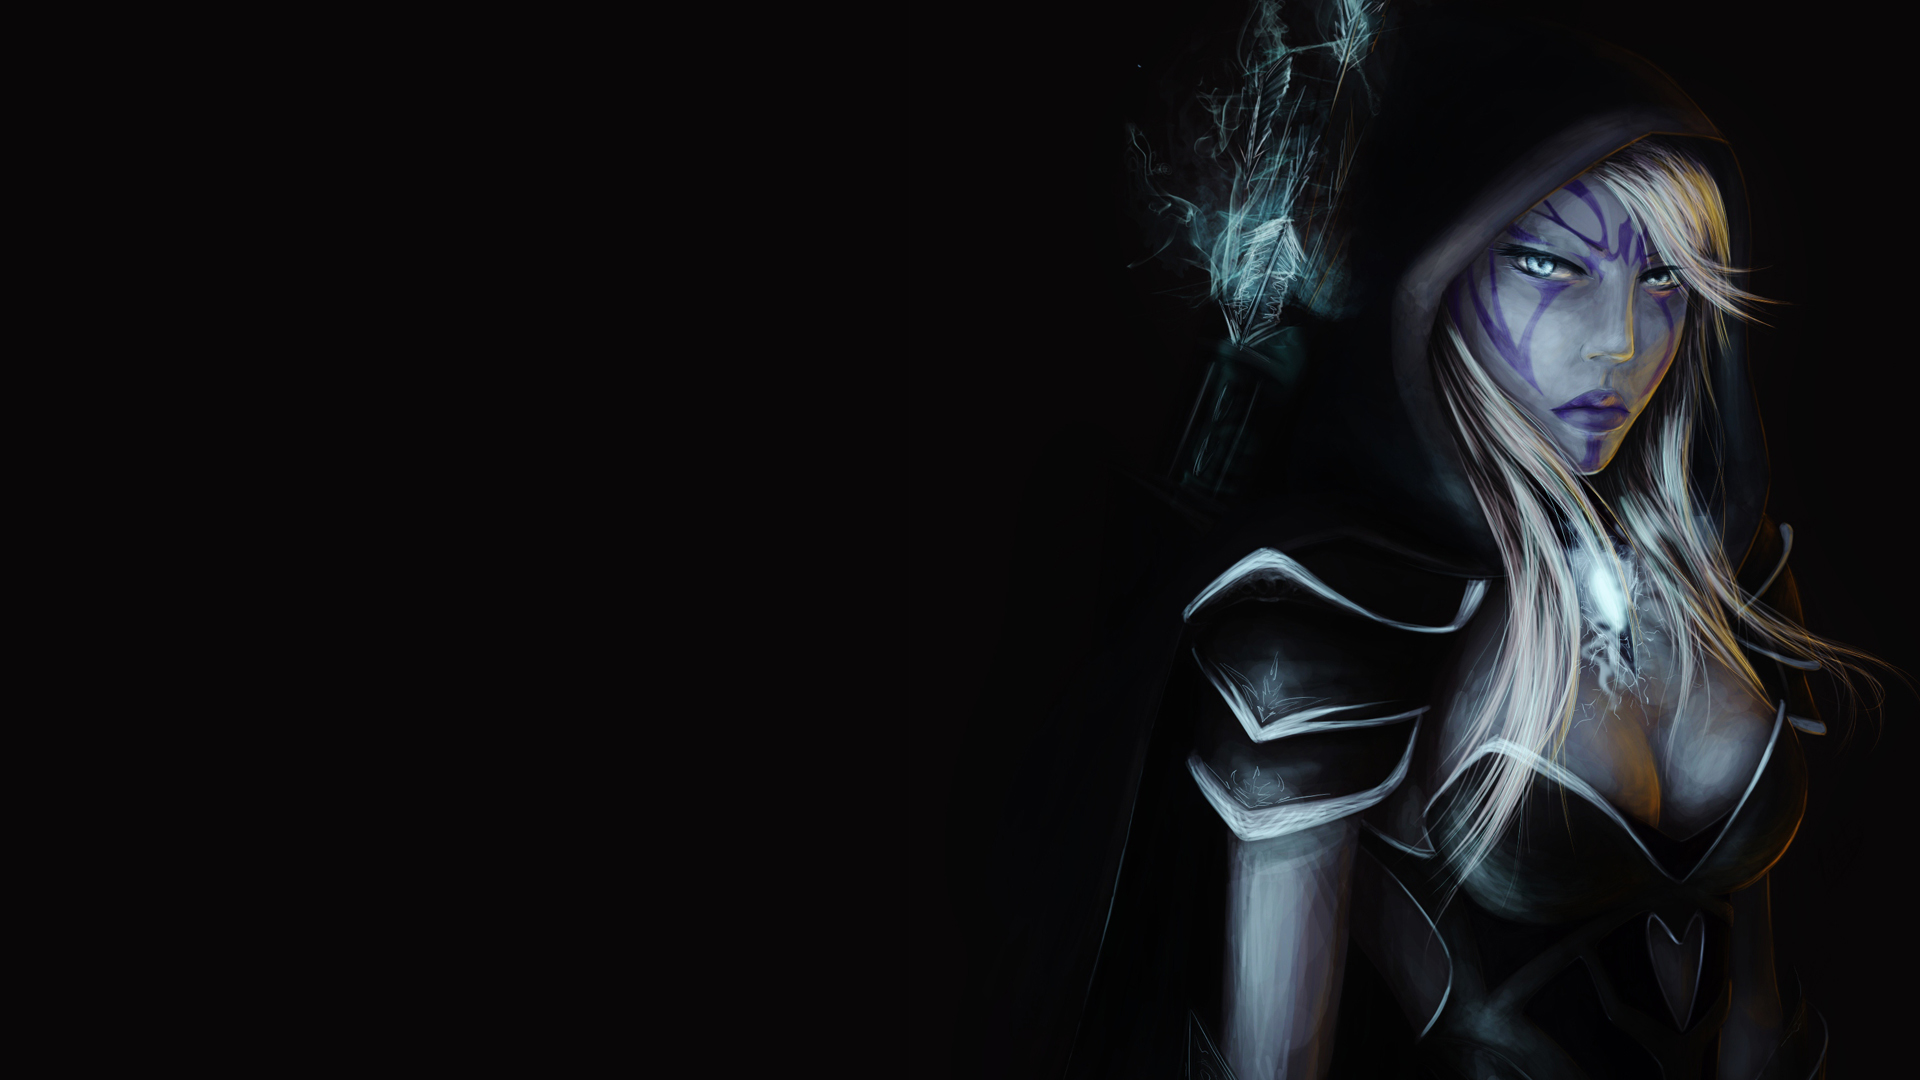 Wallpaper Abyss Explore the Collection Dota Video Game DotA 2 387546 1920x1080